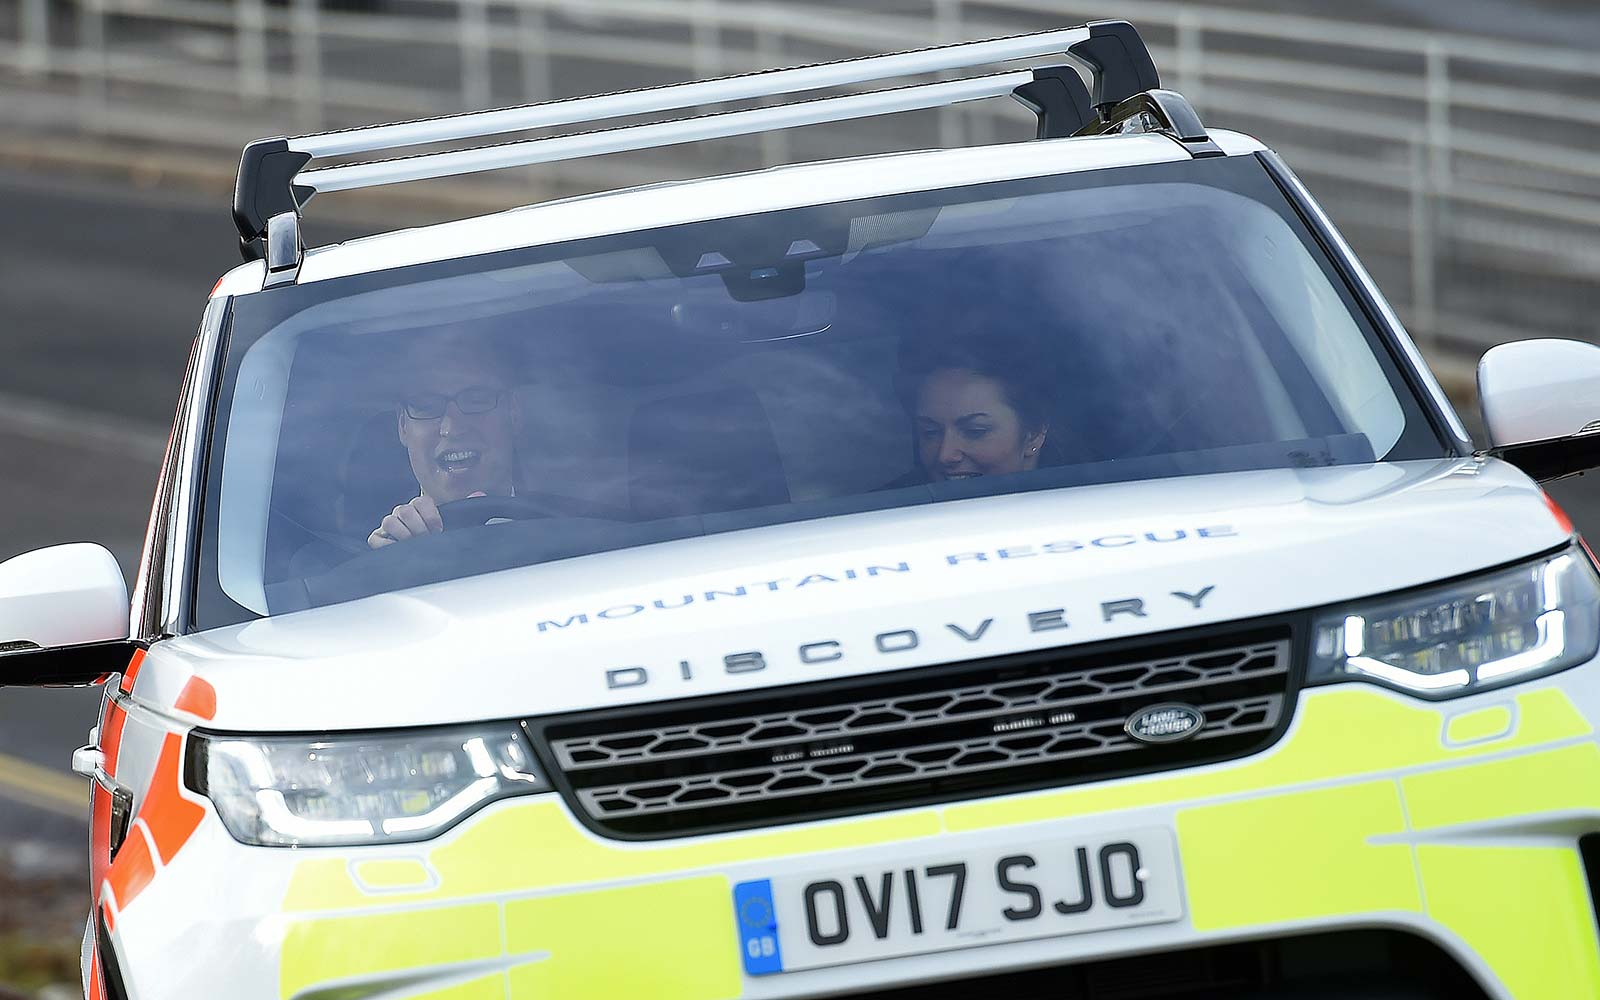 Prince William and Kate Middleton Went Off-roading in a Land Rover: Photos